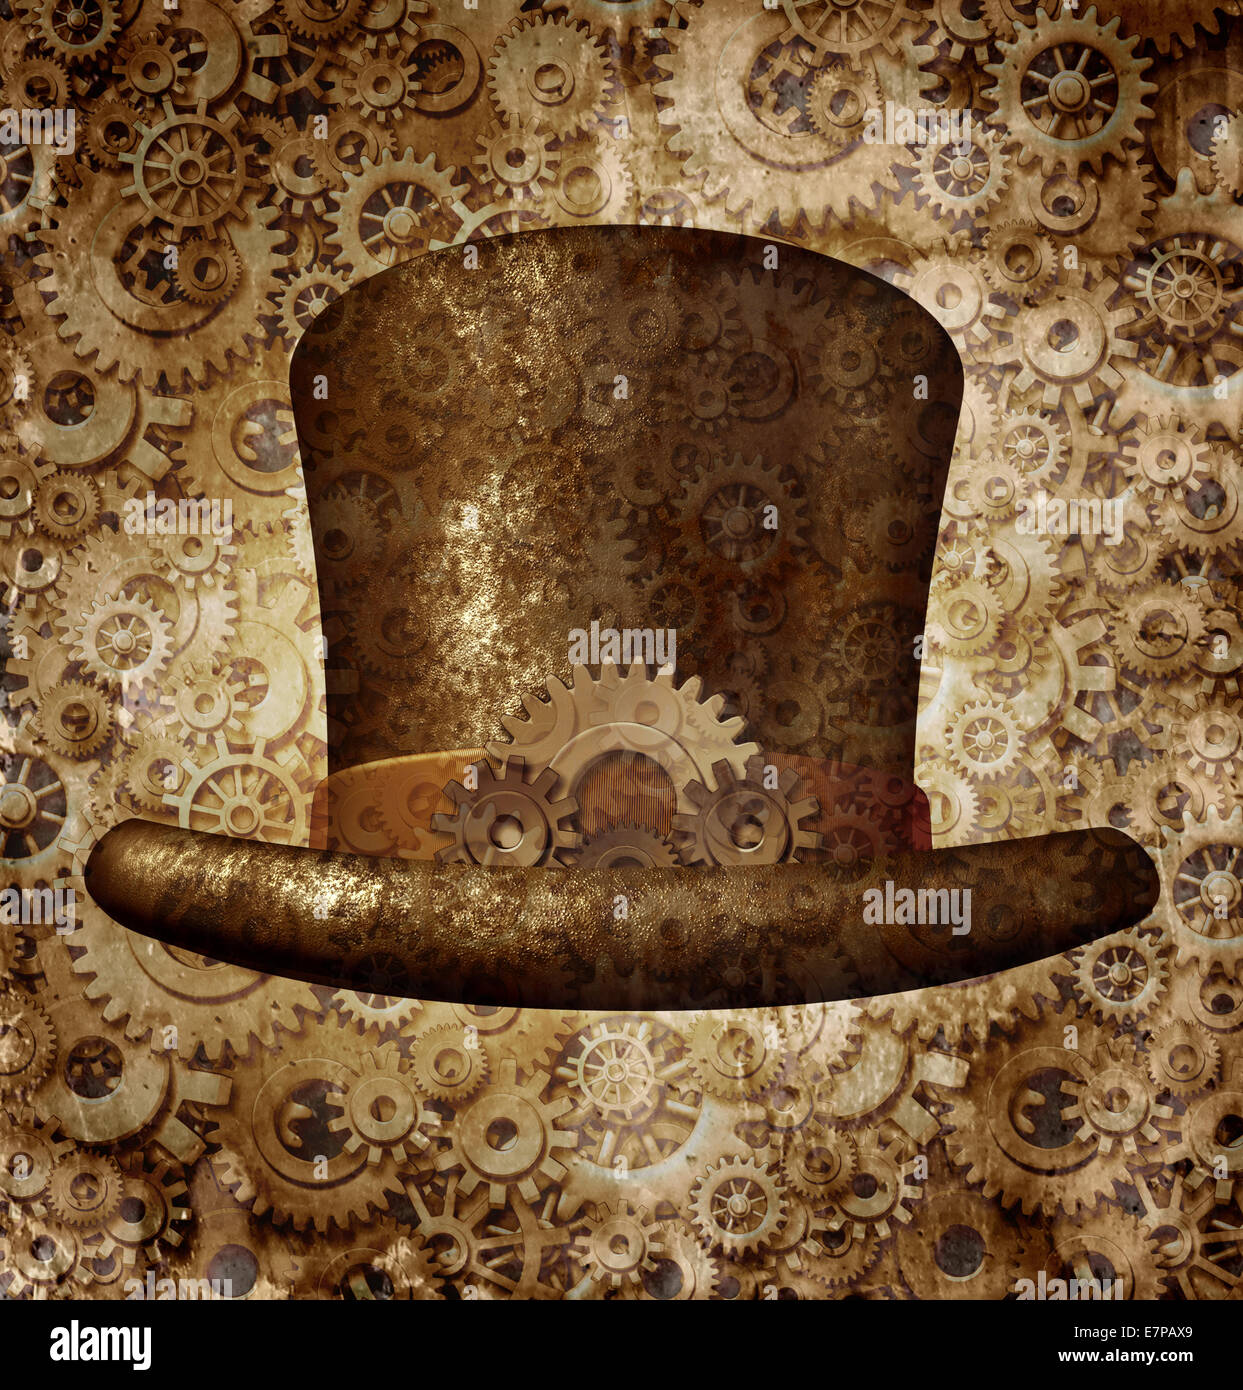 Steampunk top hat as a science fiction concept made of metal copper a science fiction concept made of metal copper gears and cogs wearing a historical victorian retro head accessory as a technology symbol of futuristic buycottarizona Image collections